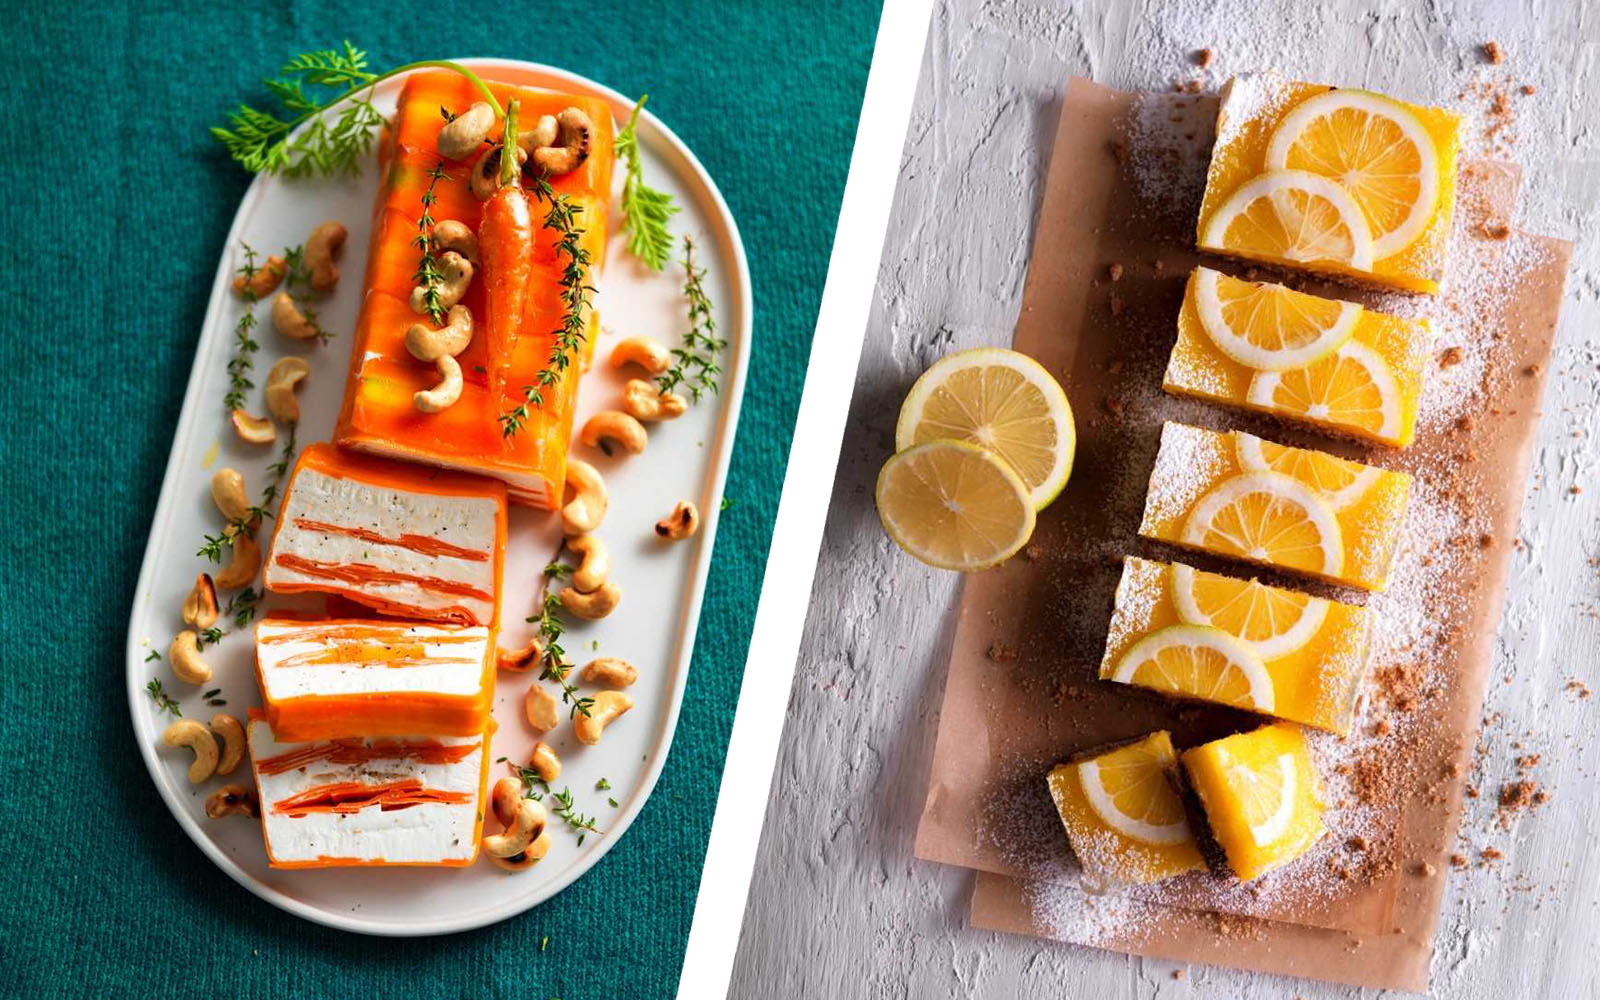 The winter sun shines with these recipes